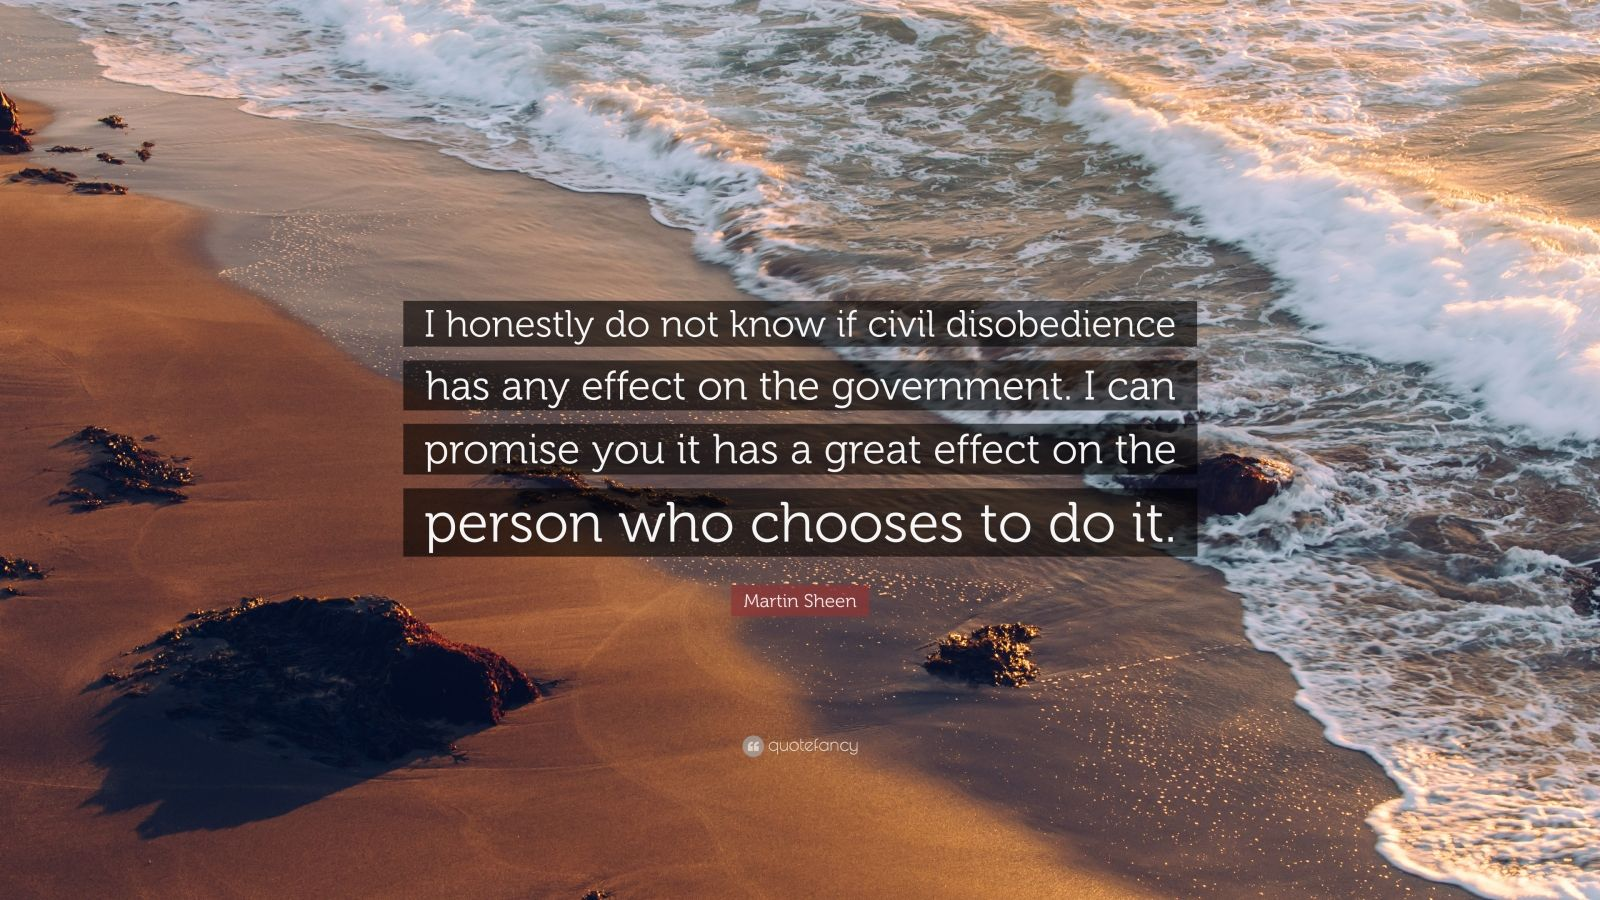 """Martin Sheen Quote: """"I honestly do not know if civil disobedience has any effect on the government. I can promise you it has a great effect on the person who chooses to do it."""""""